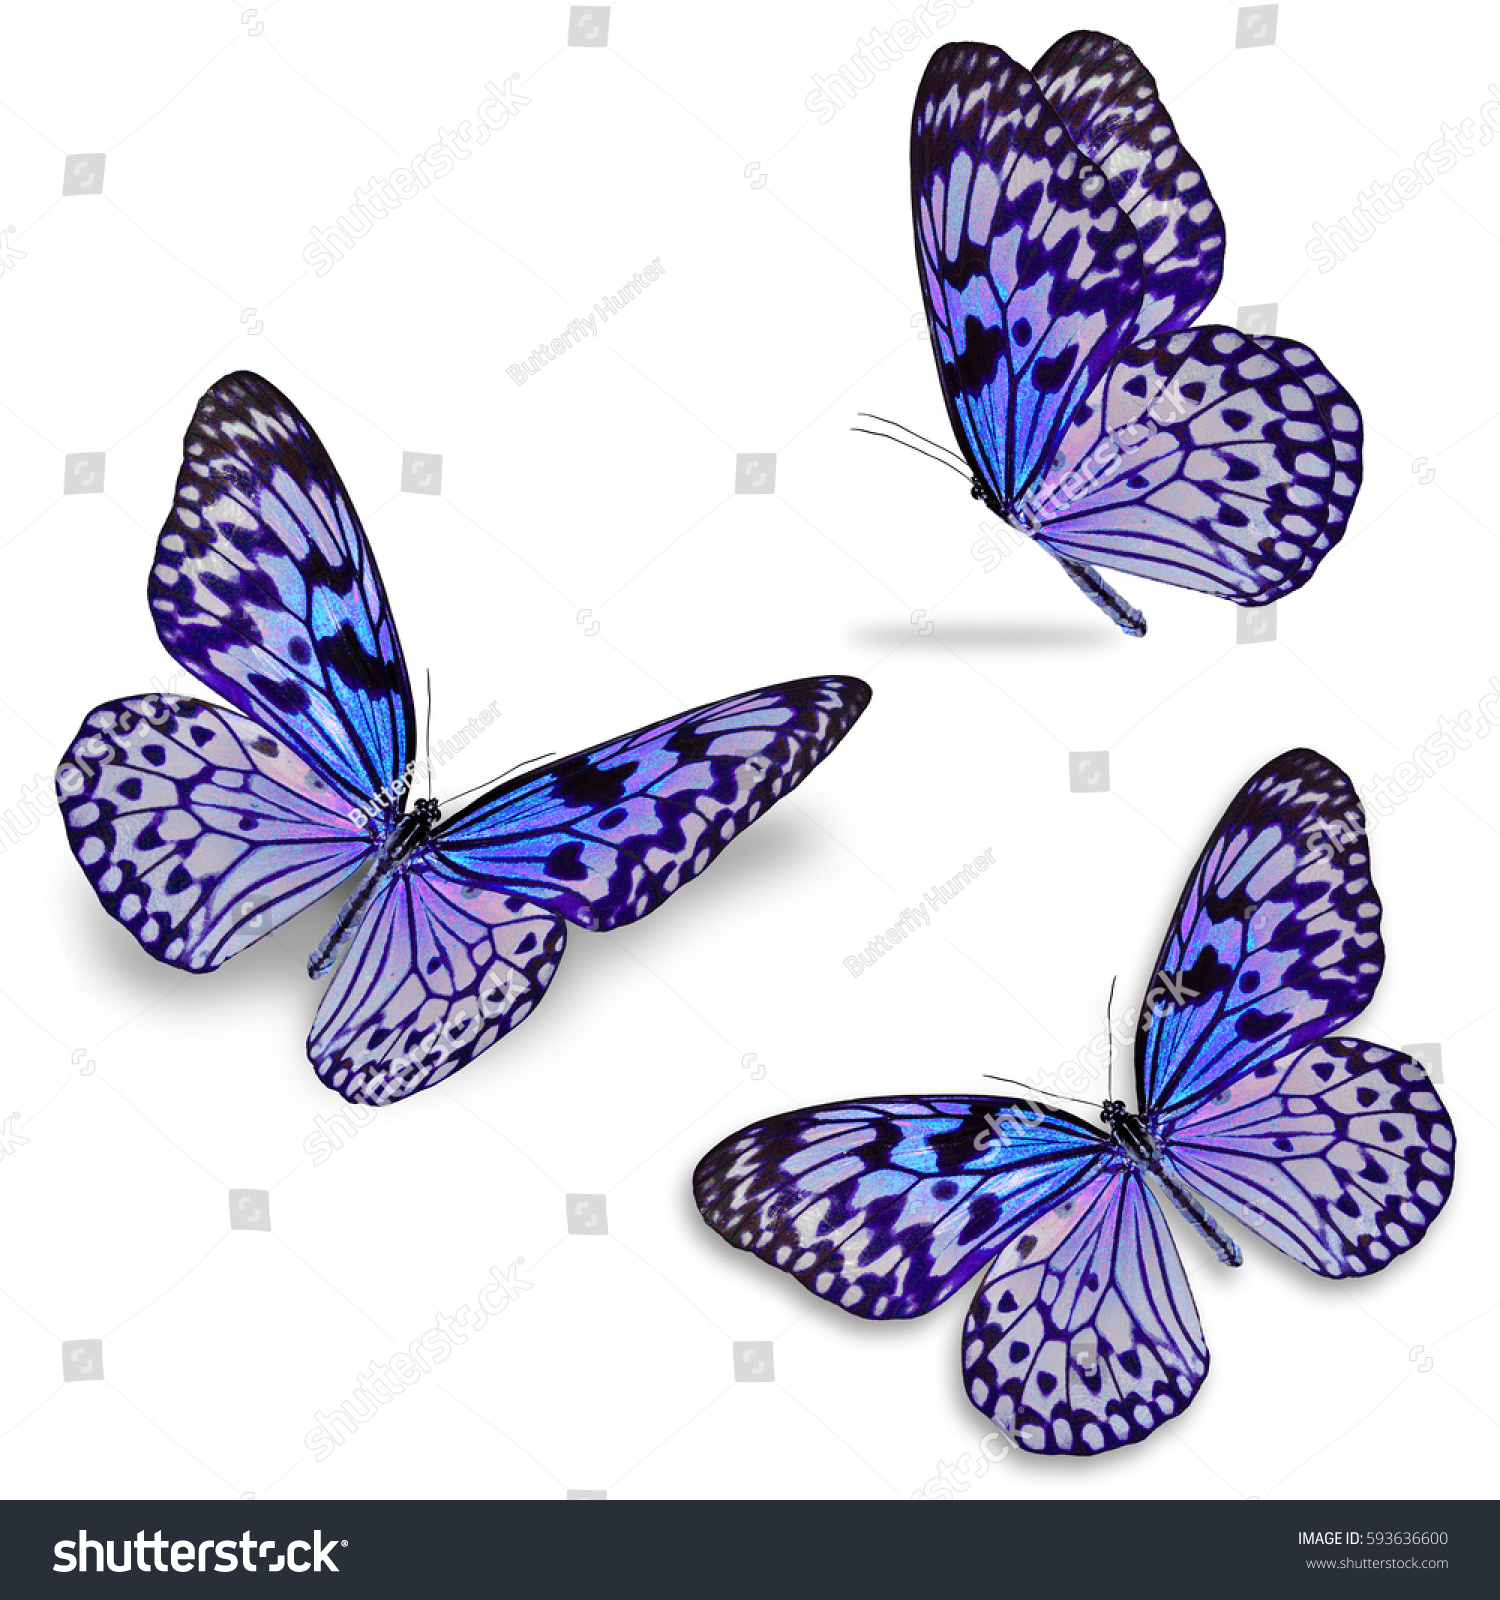 Beautiful Three Colorful Butterfly Isolated On Stock Photo 593636600 ...